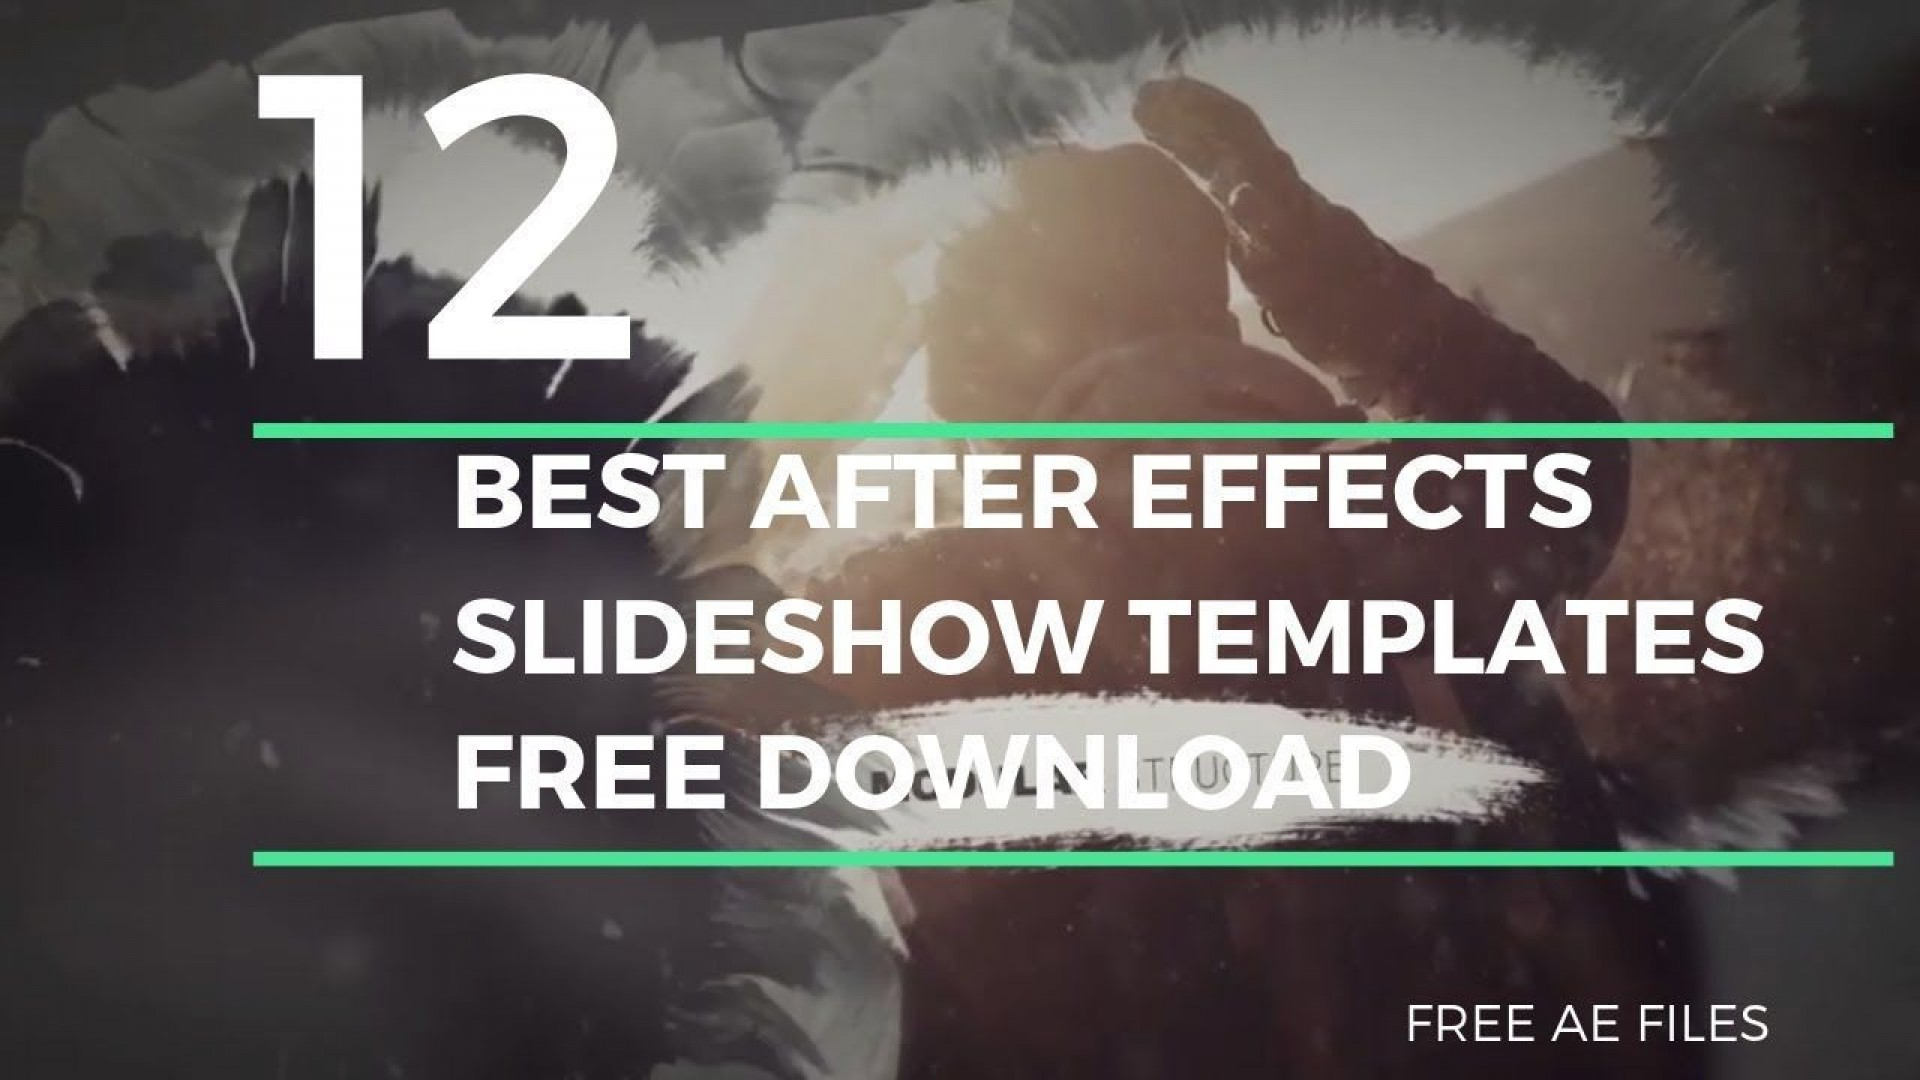 003 Fascinating Free After Effect Slideshow Template High Definition  Download Free-after-effects-slideshow-templates-9481920